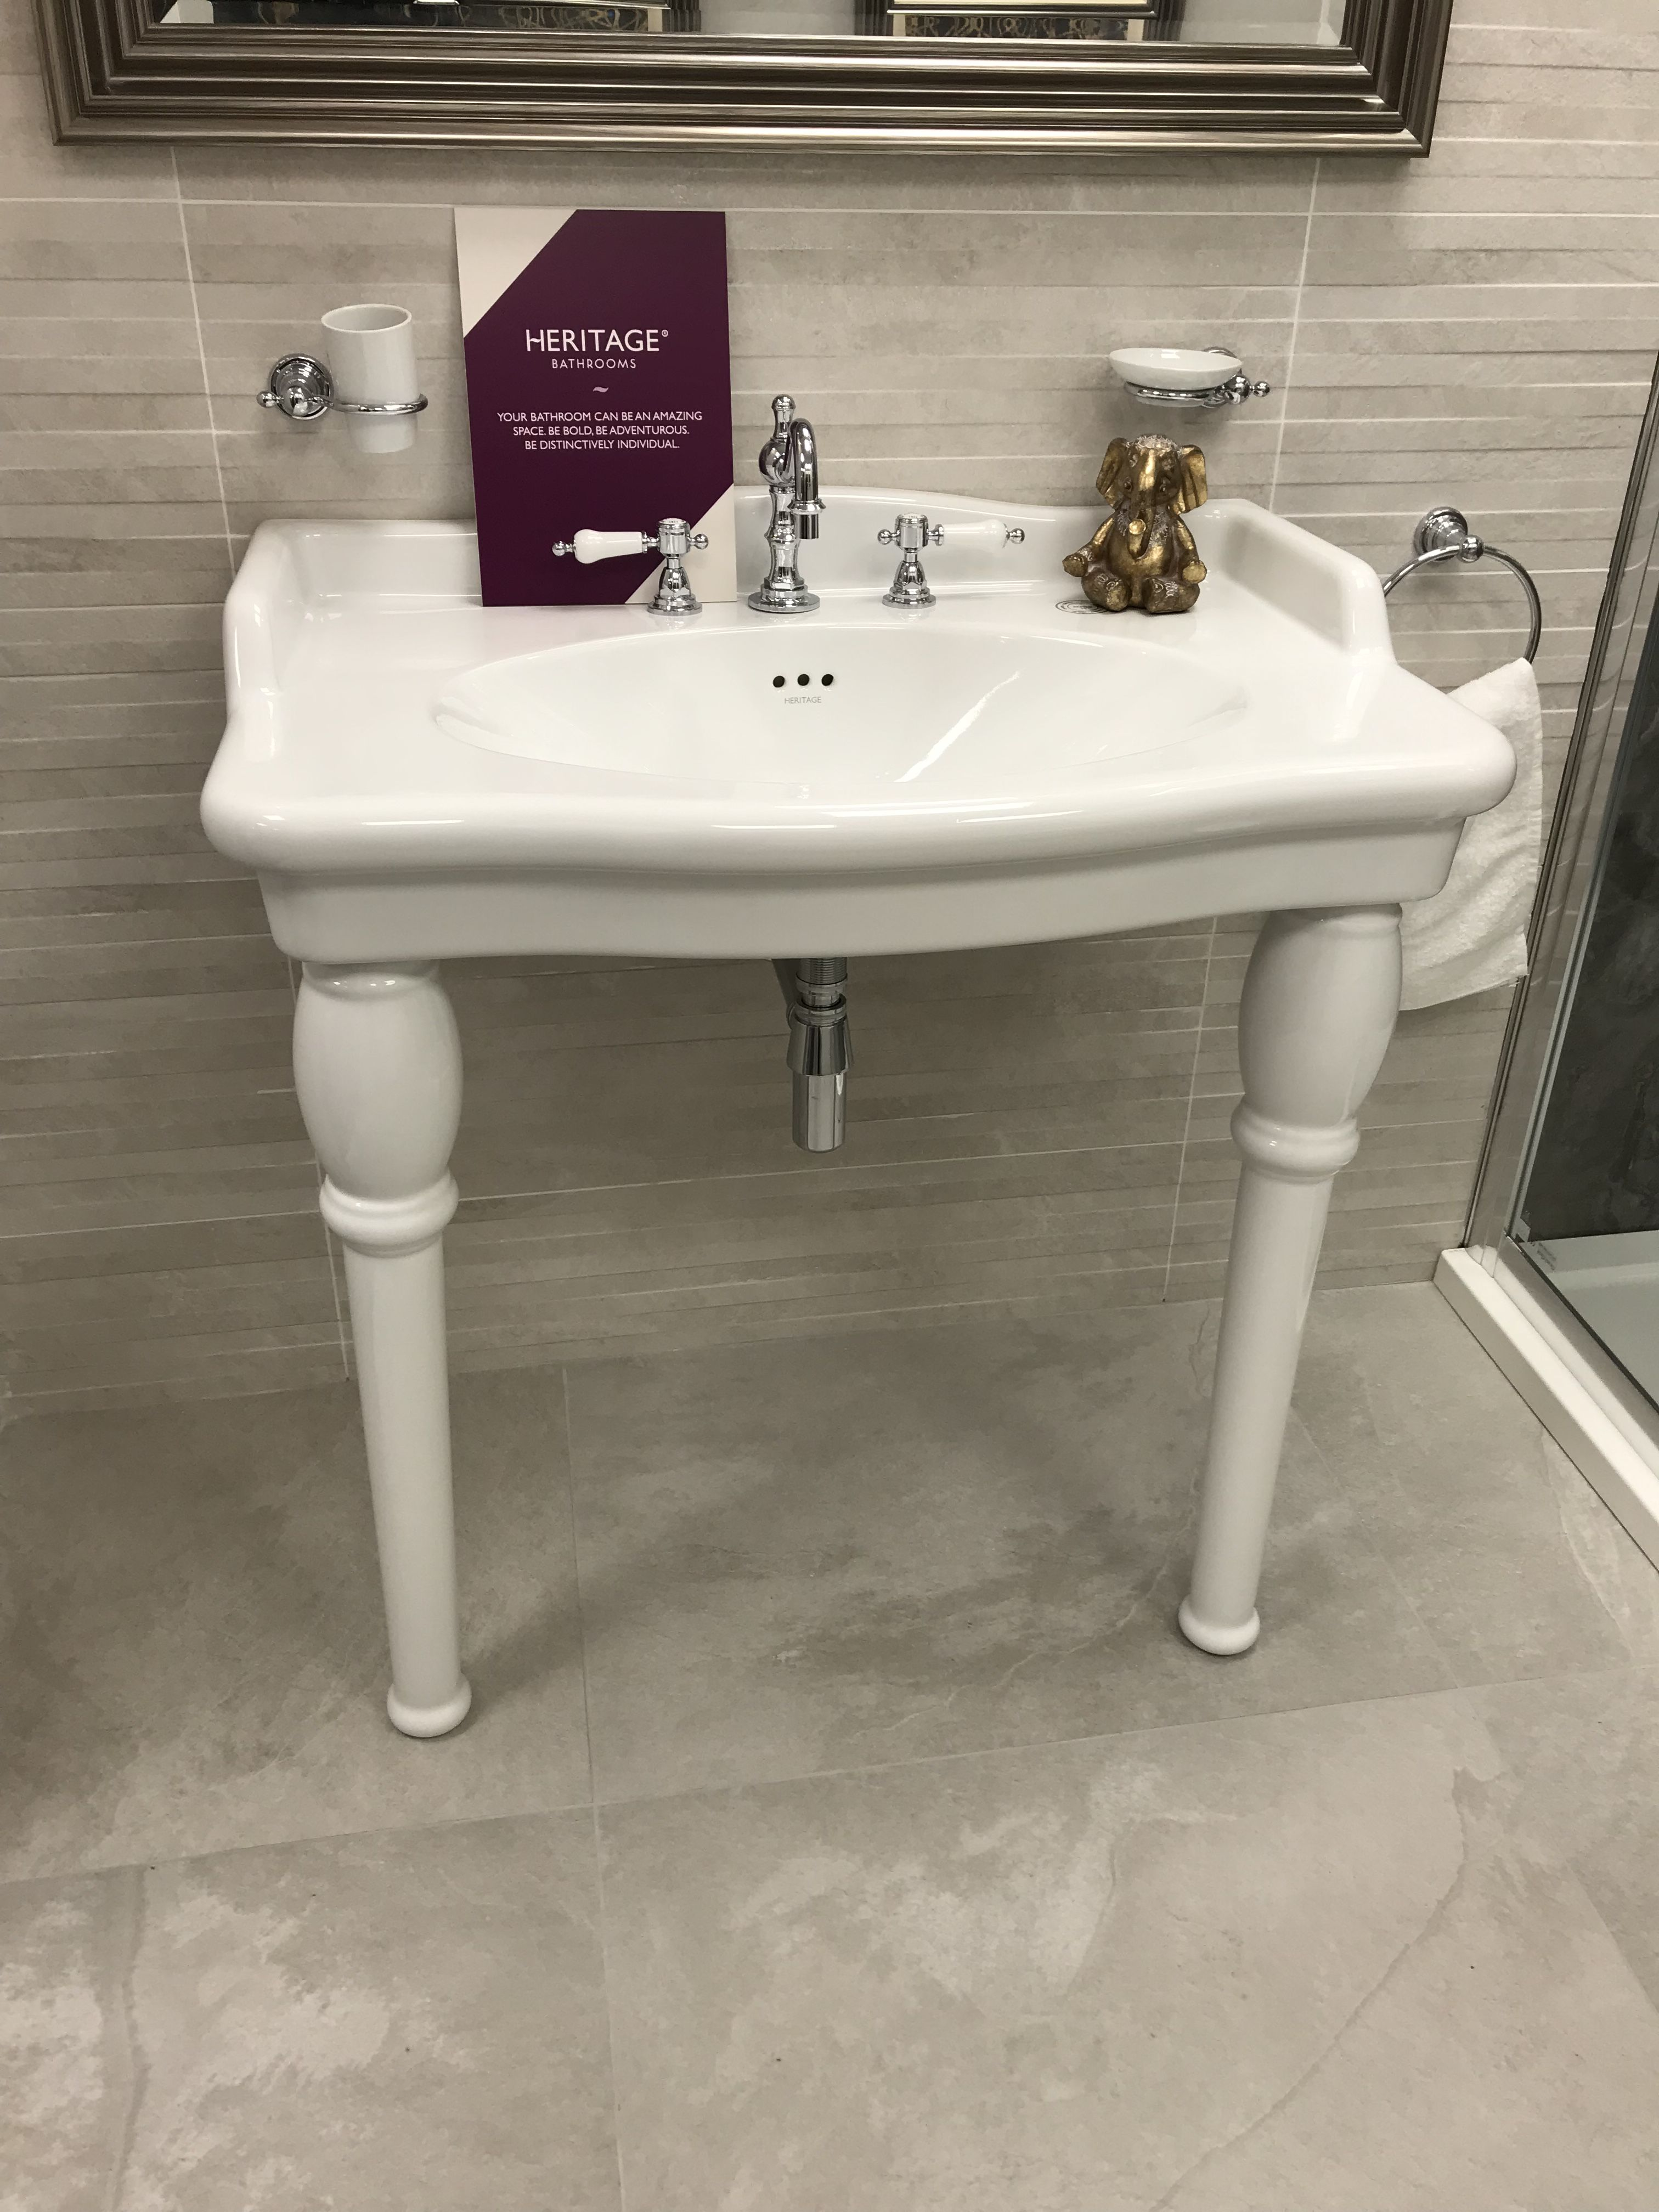 Traditional Basin (With images) | Heritage bathroom ...